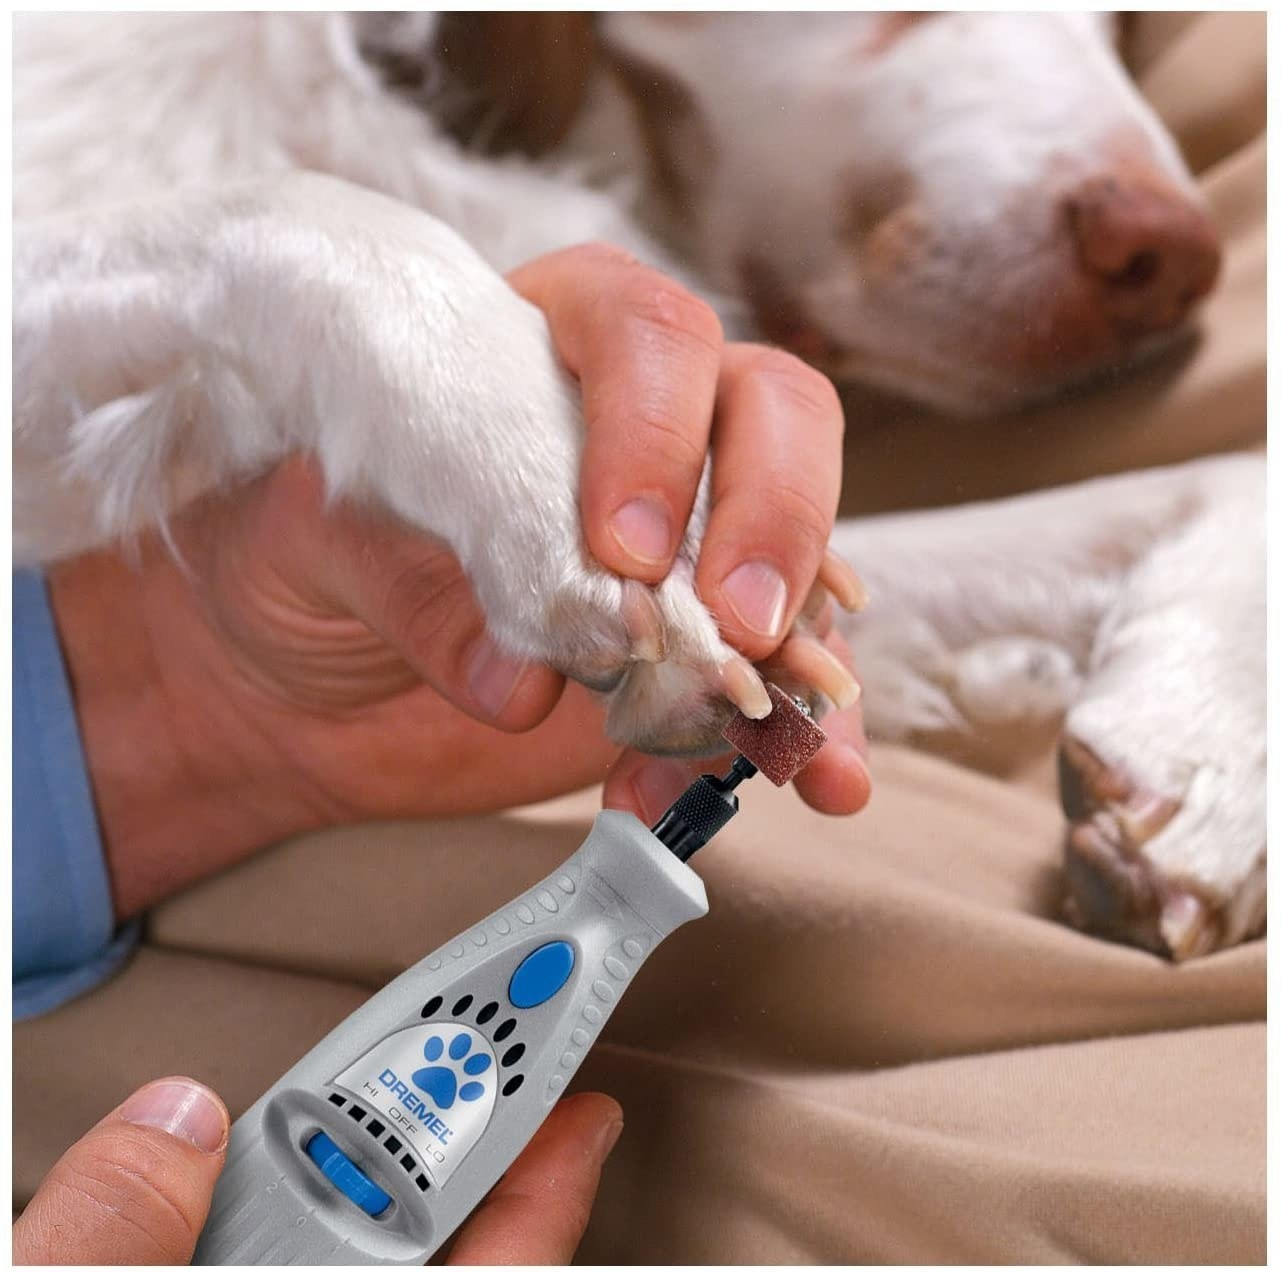 A person filing their dog's nails with the tool